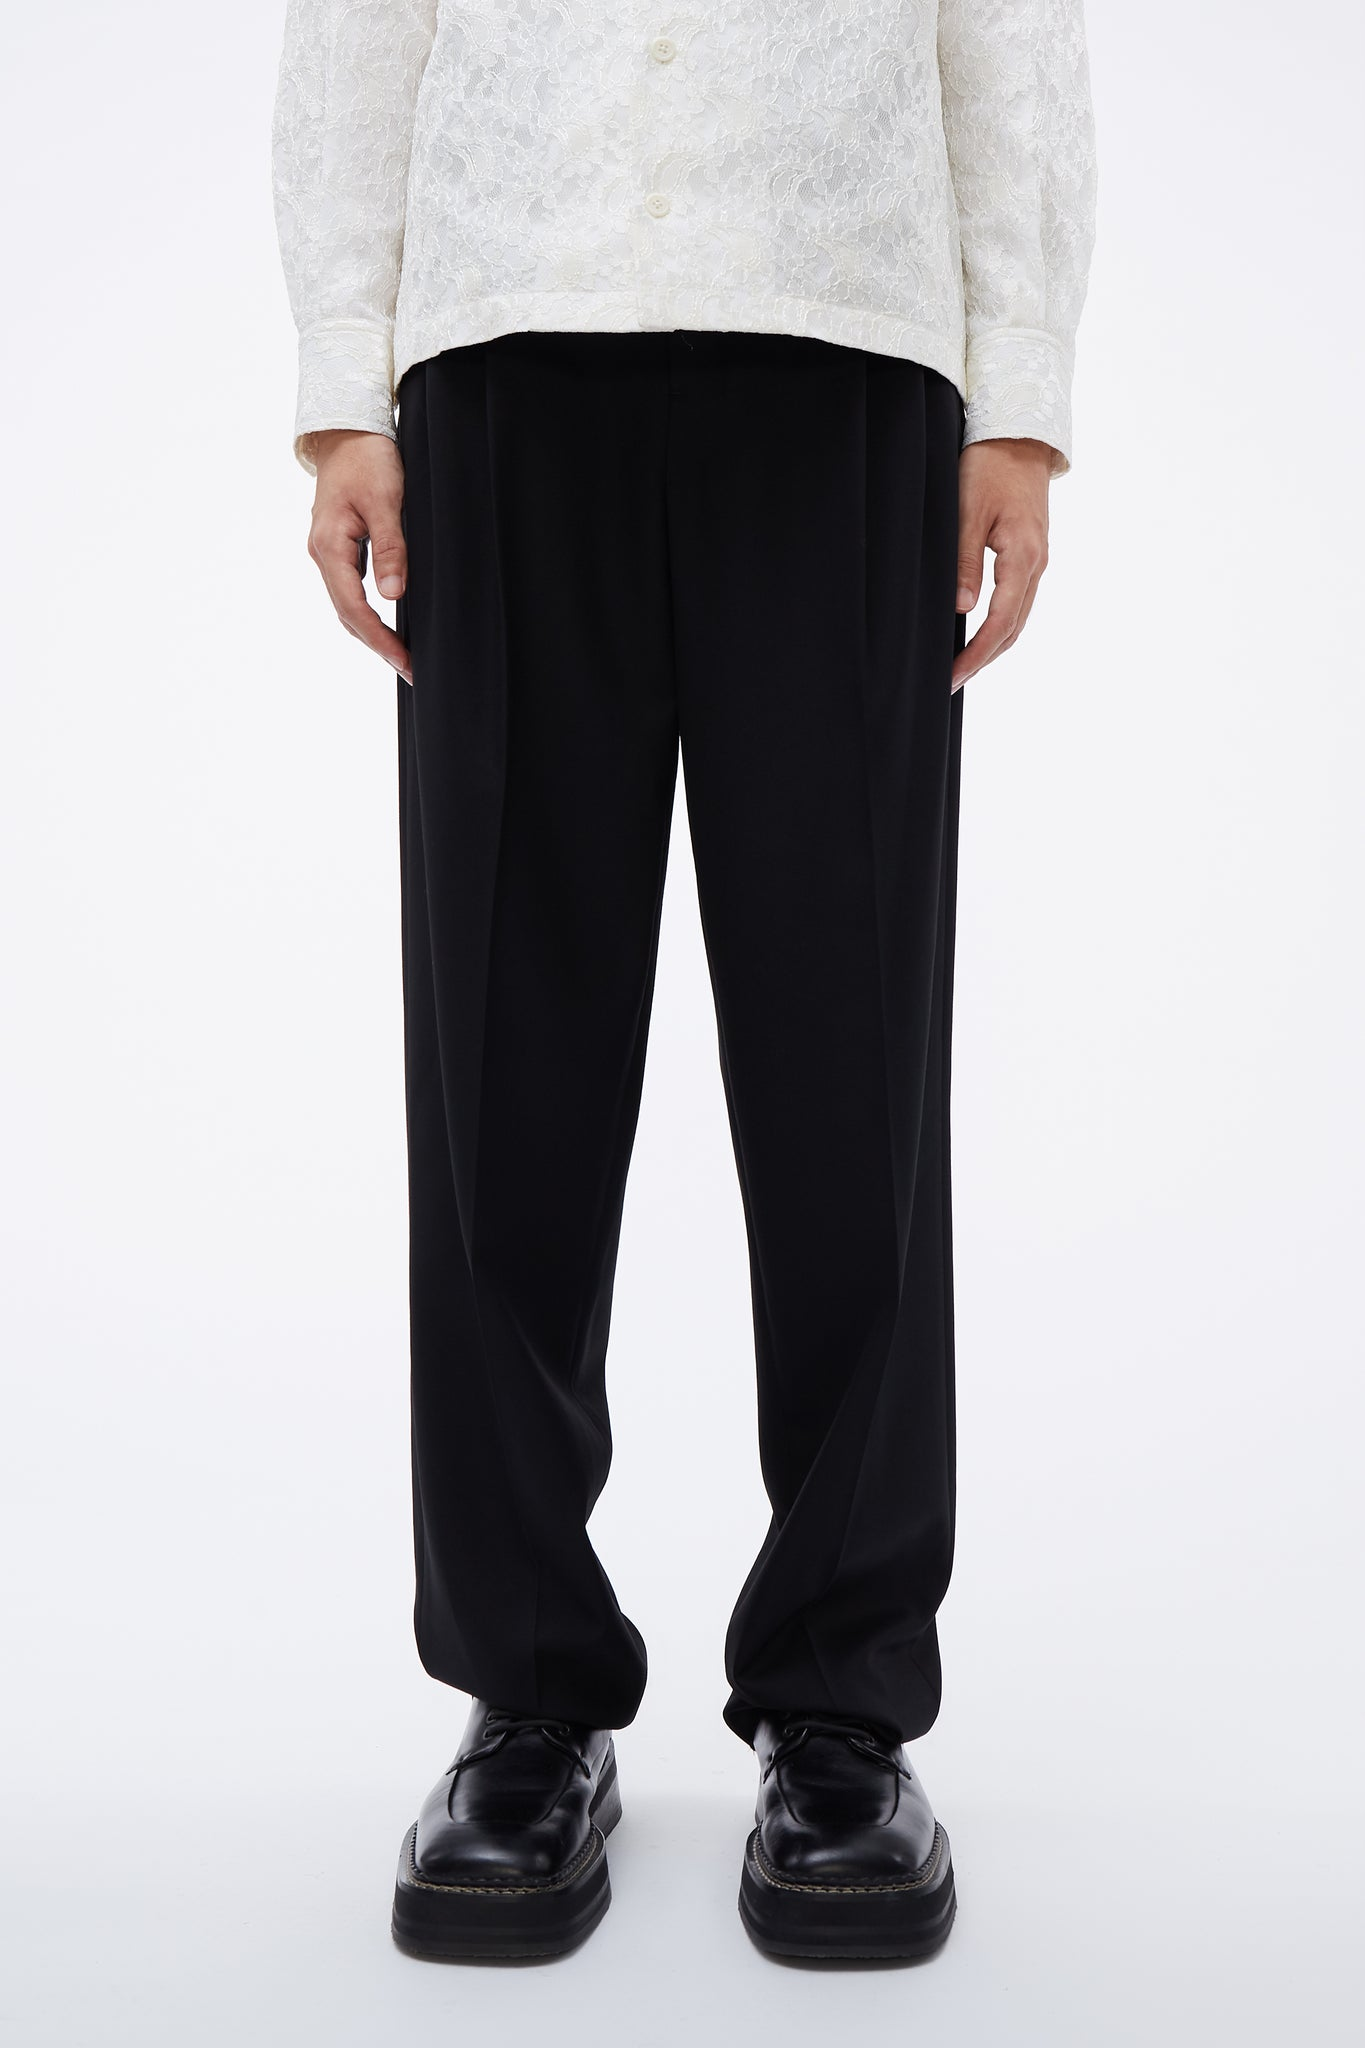 Unisex Pleated Pants Black